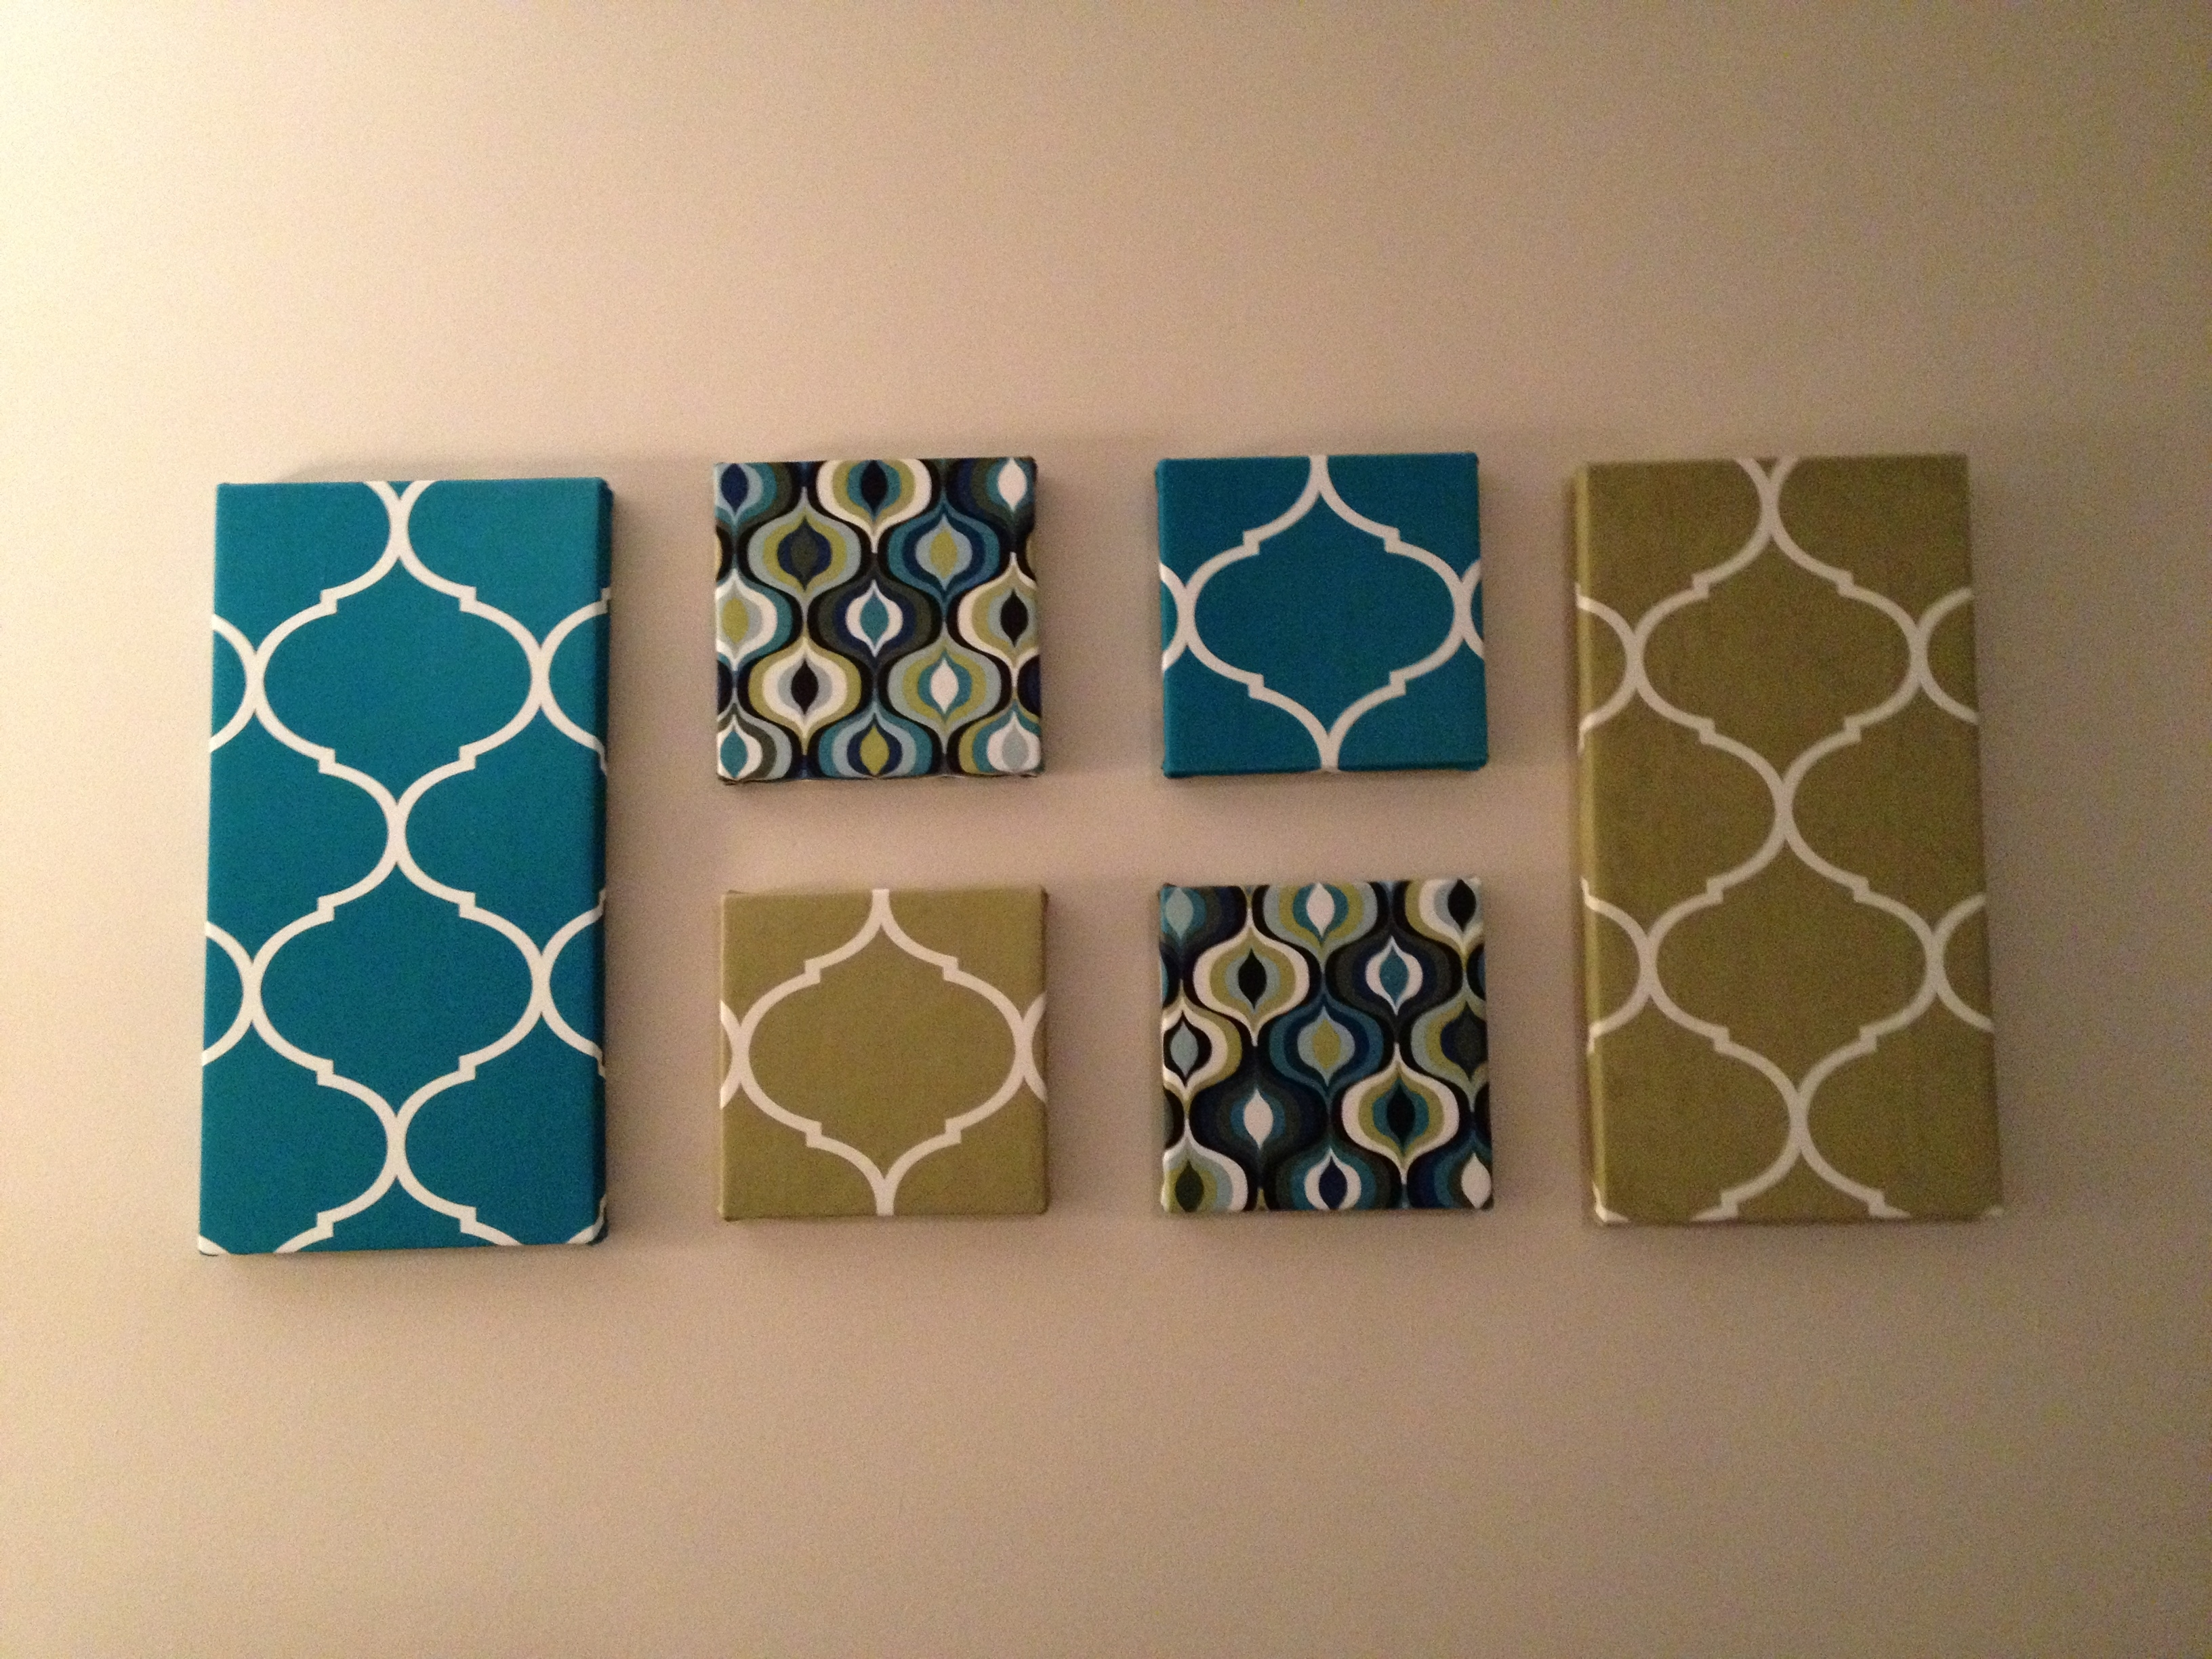 Candy And Her Cupcakes Regarding Most Recently Released Canvas Wall Art With Fabric (Gallery 2 of 15)